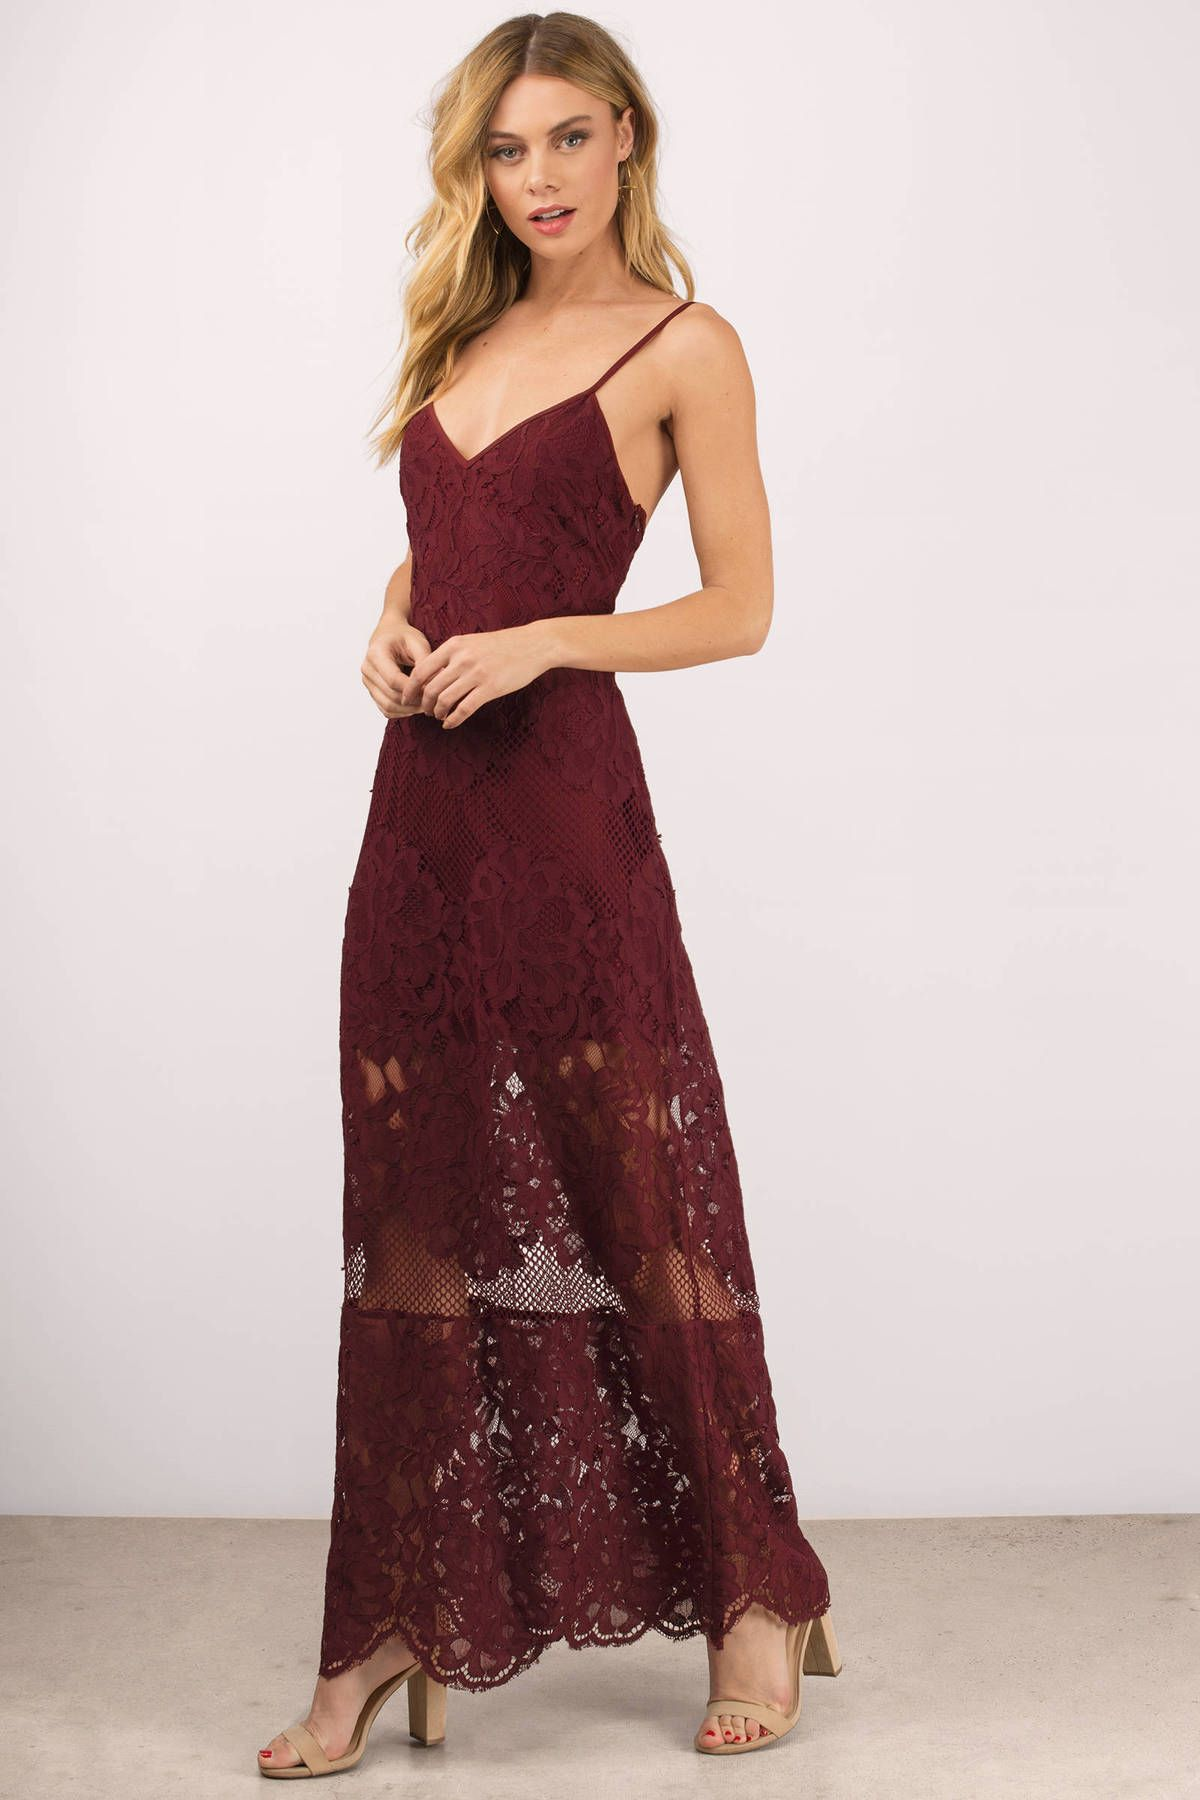 Wanderlust lace maxi dress lace the ojays and wanderlust bridesmaid ombrellifo Images